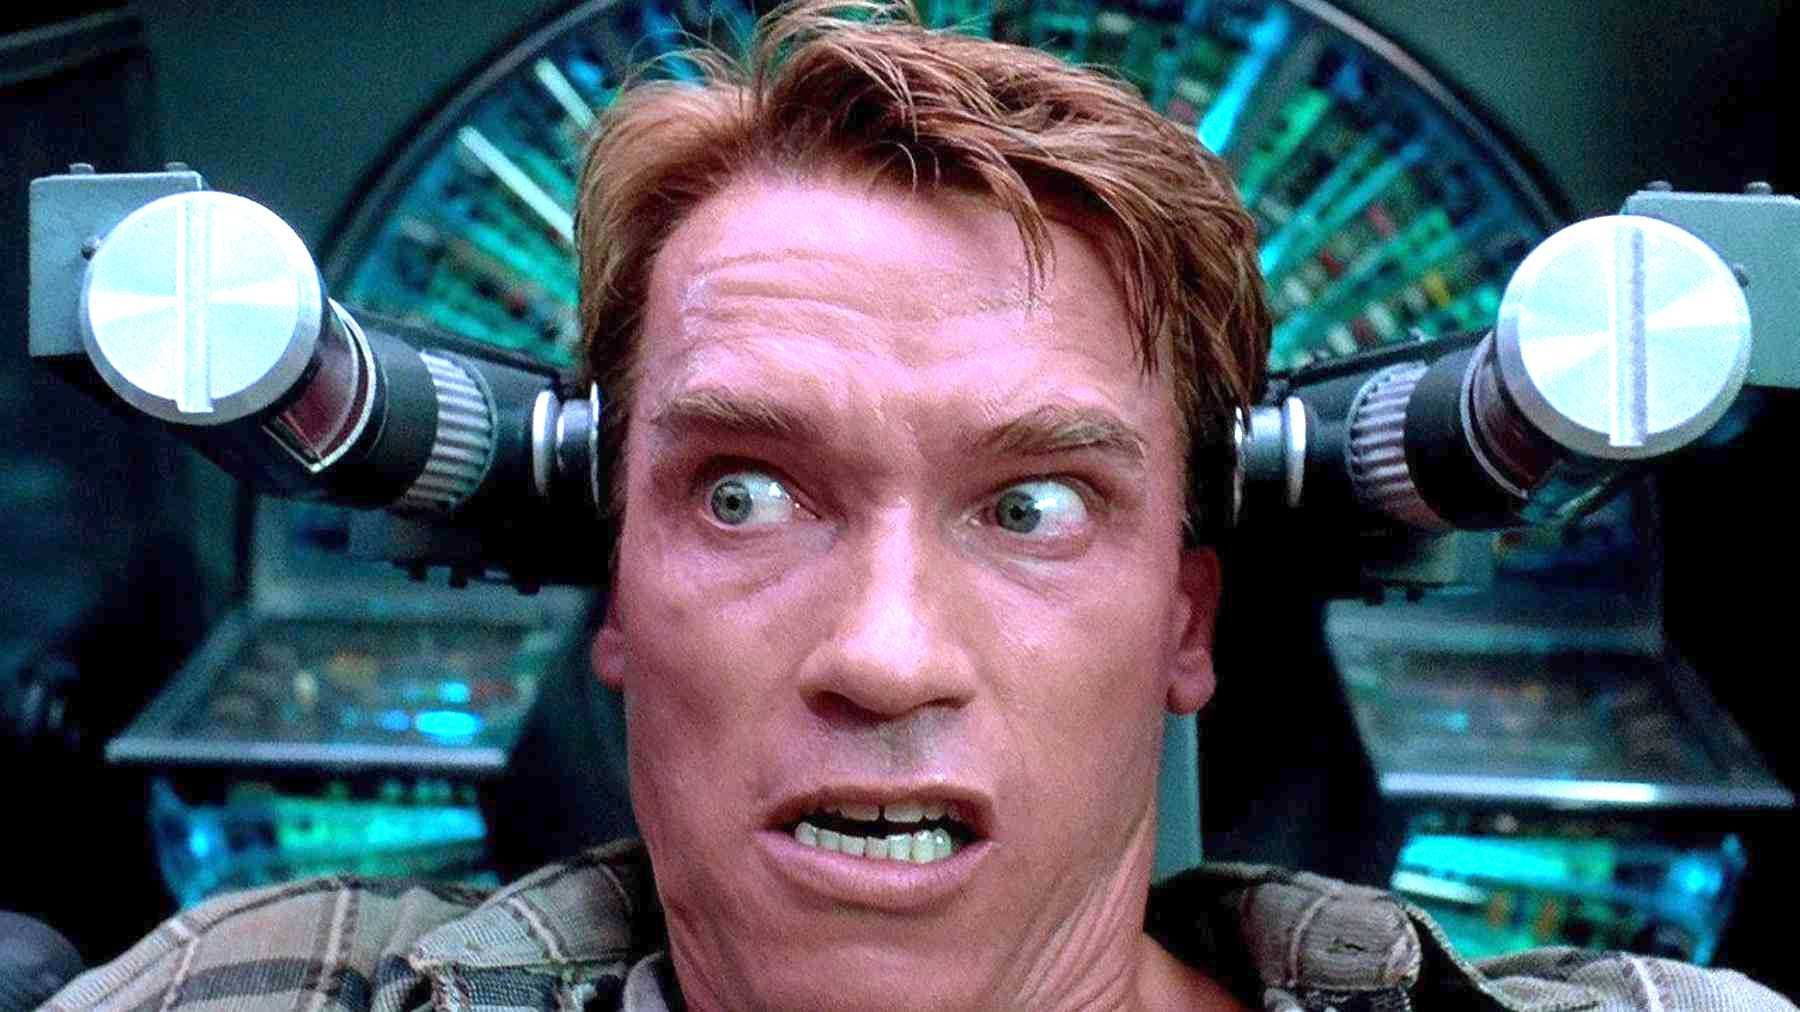 Arnold sitting in the memory implantation chair from Total Recall